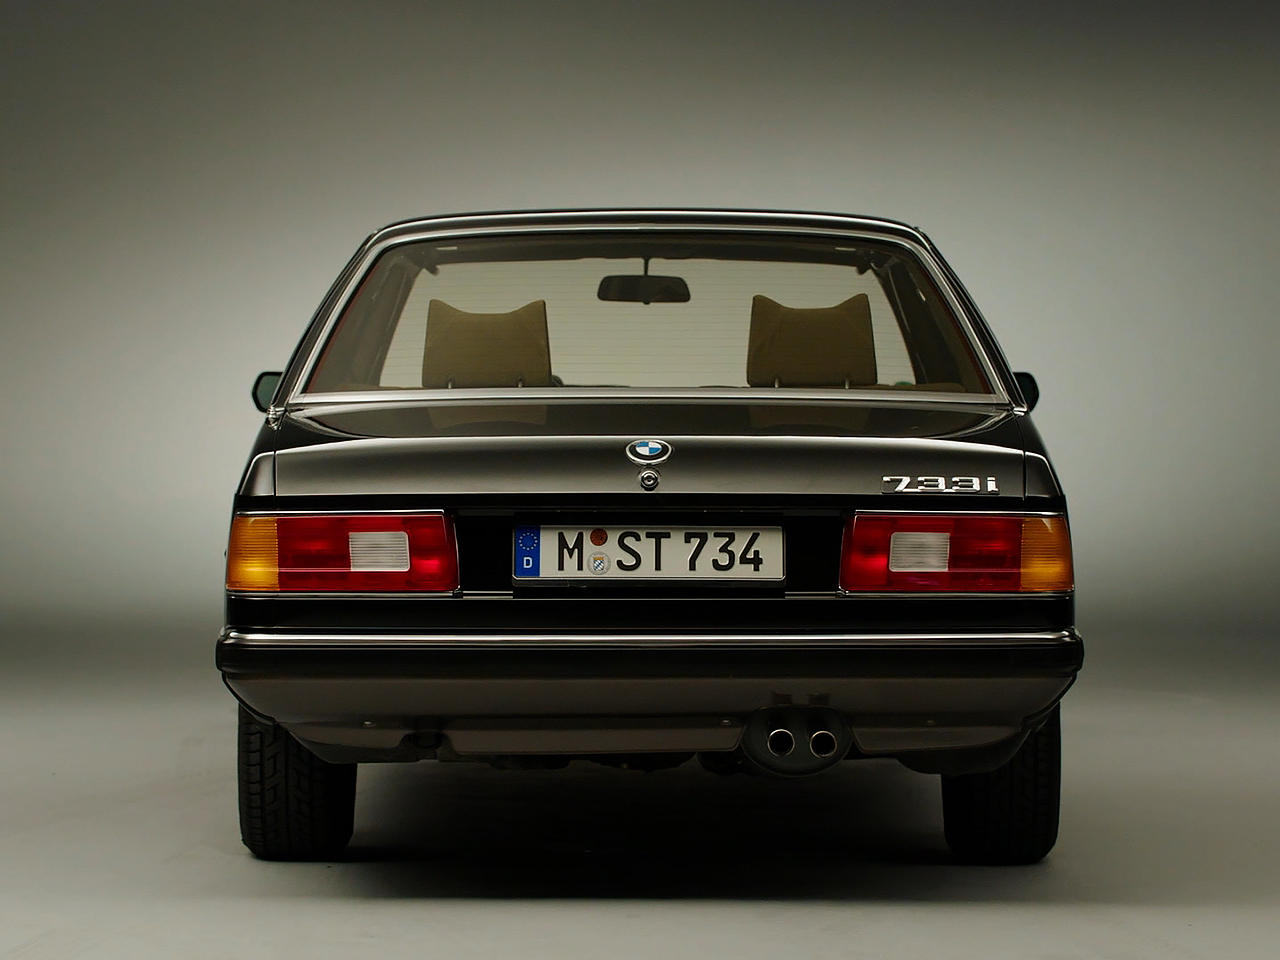 BMW 7 series 733i 1977 photo - 12